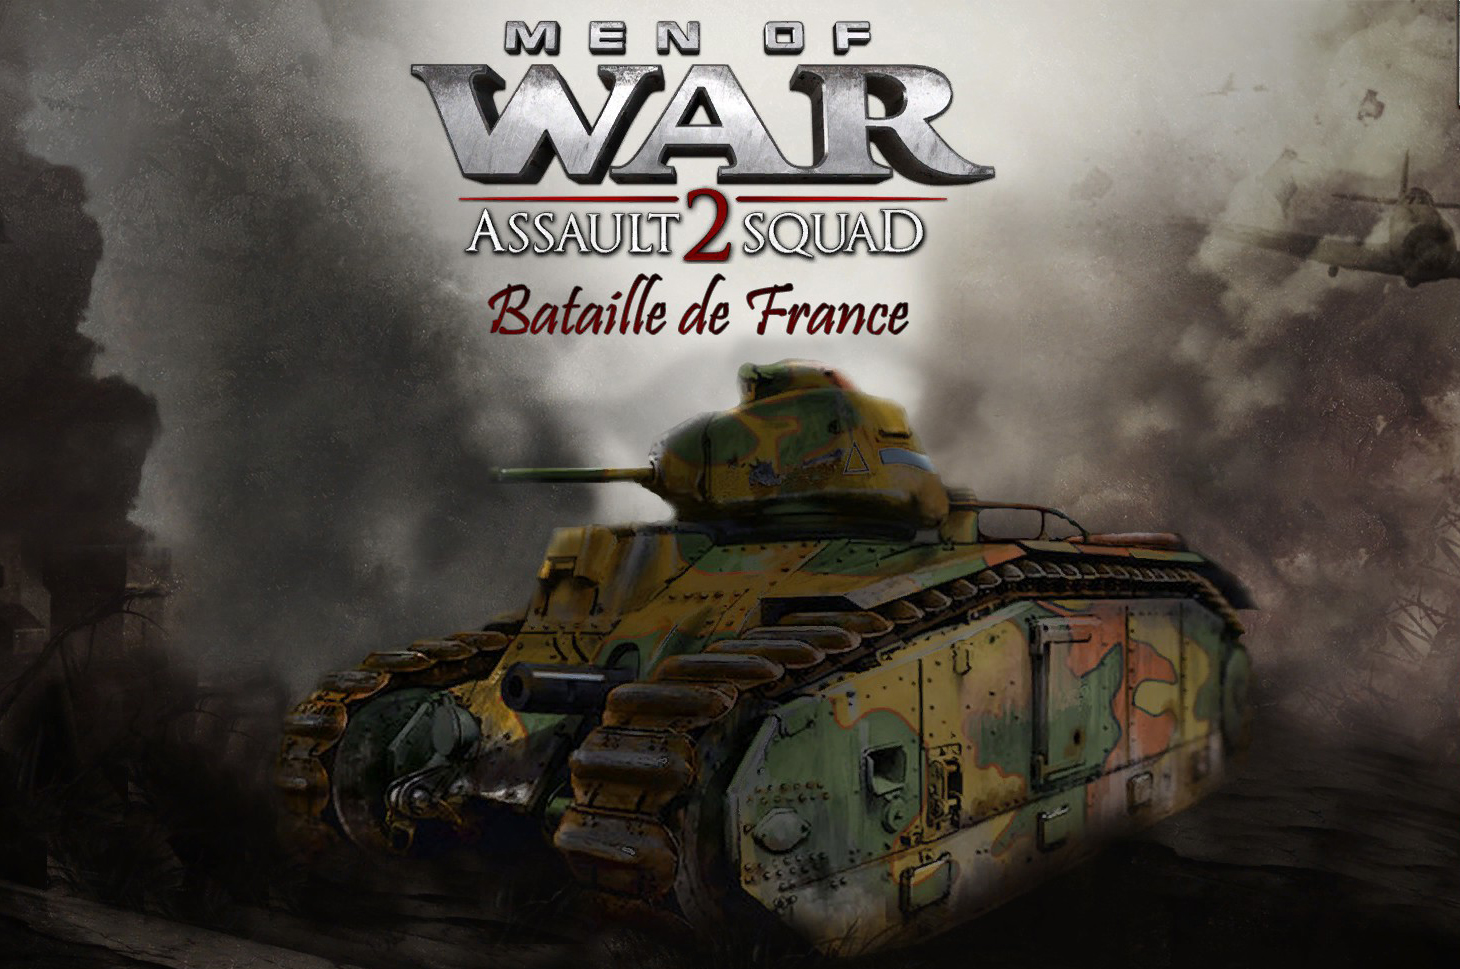 Скачать файл Battle of France for #valour (AS2 — 3.262.0) (v07.05.2019)